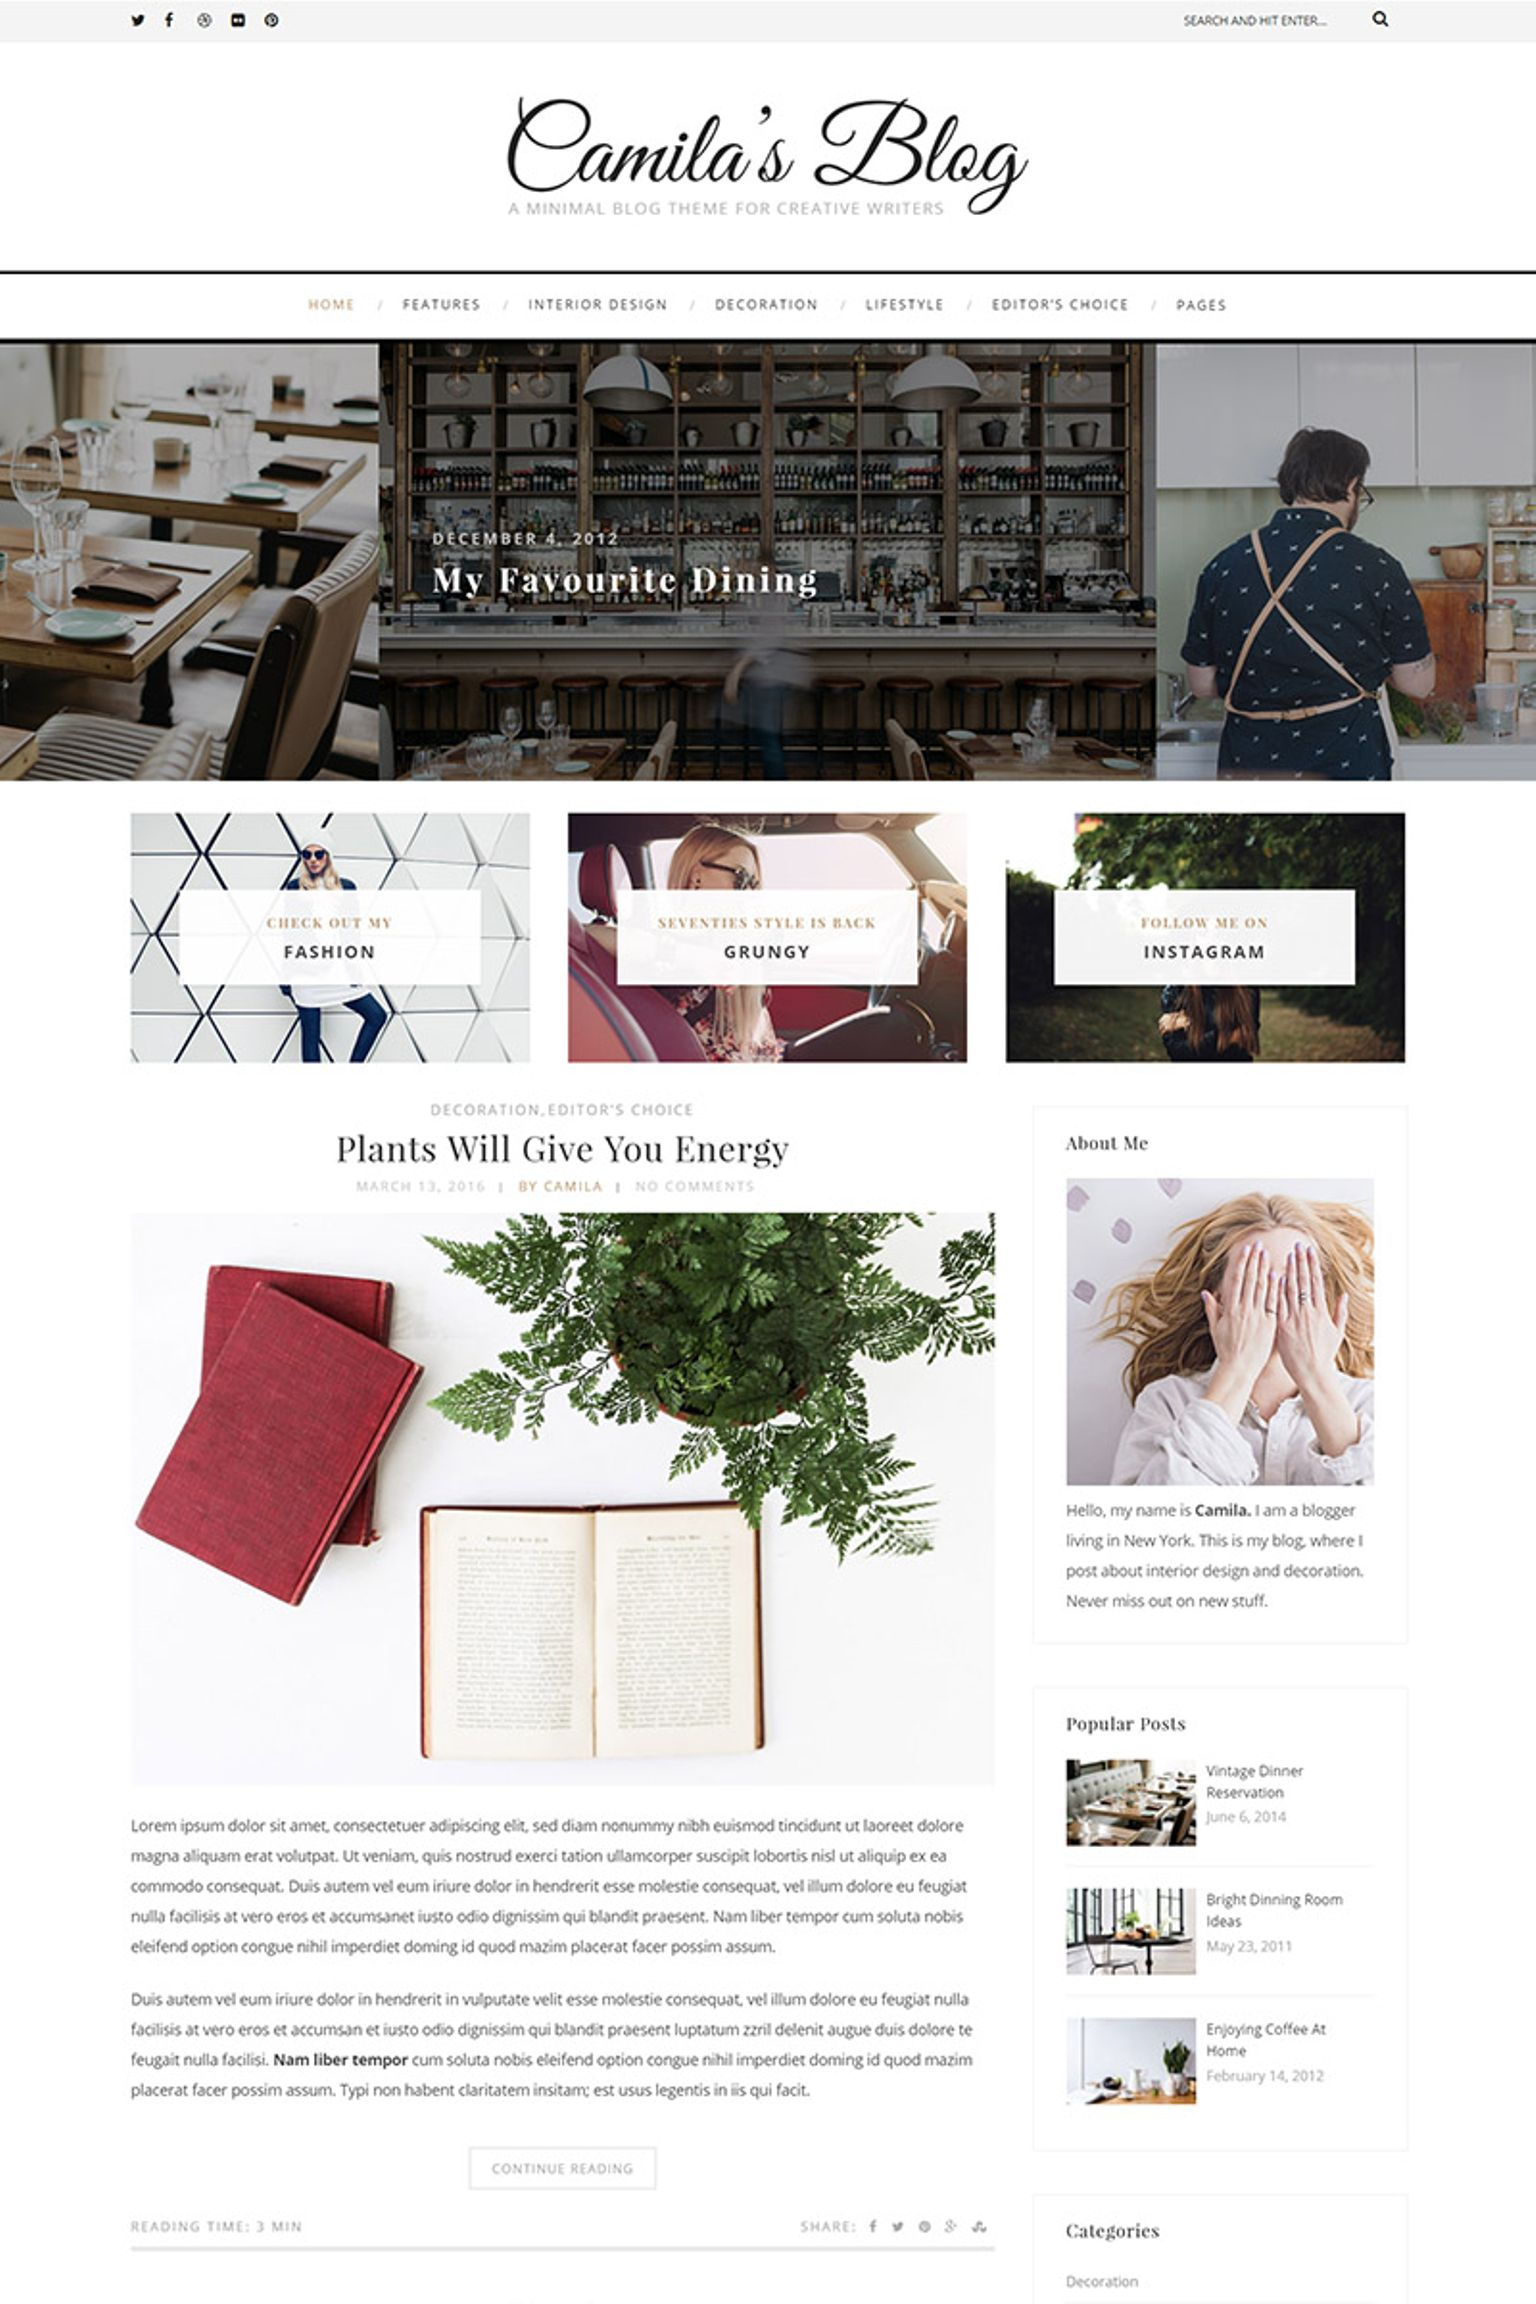 Website Design Template 65636 - clean creative fashion food hipster instagram lifestyle minimal personal photography travel wordpress essential grid masonry sidebar fullwidth